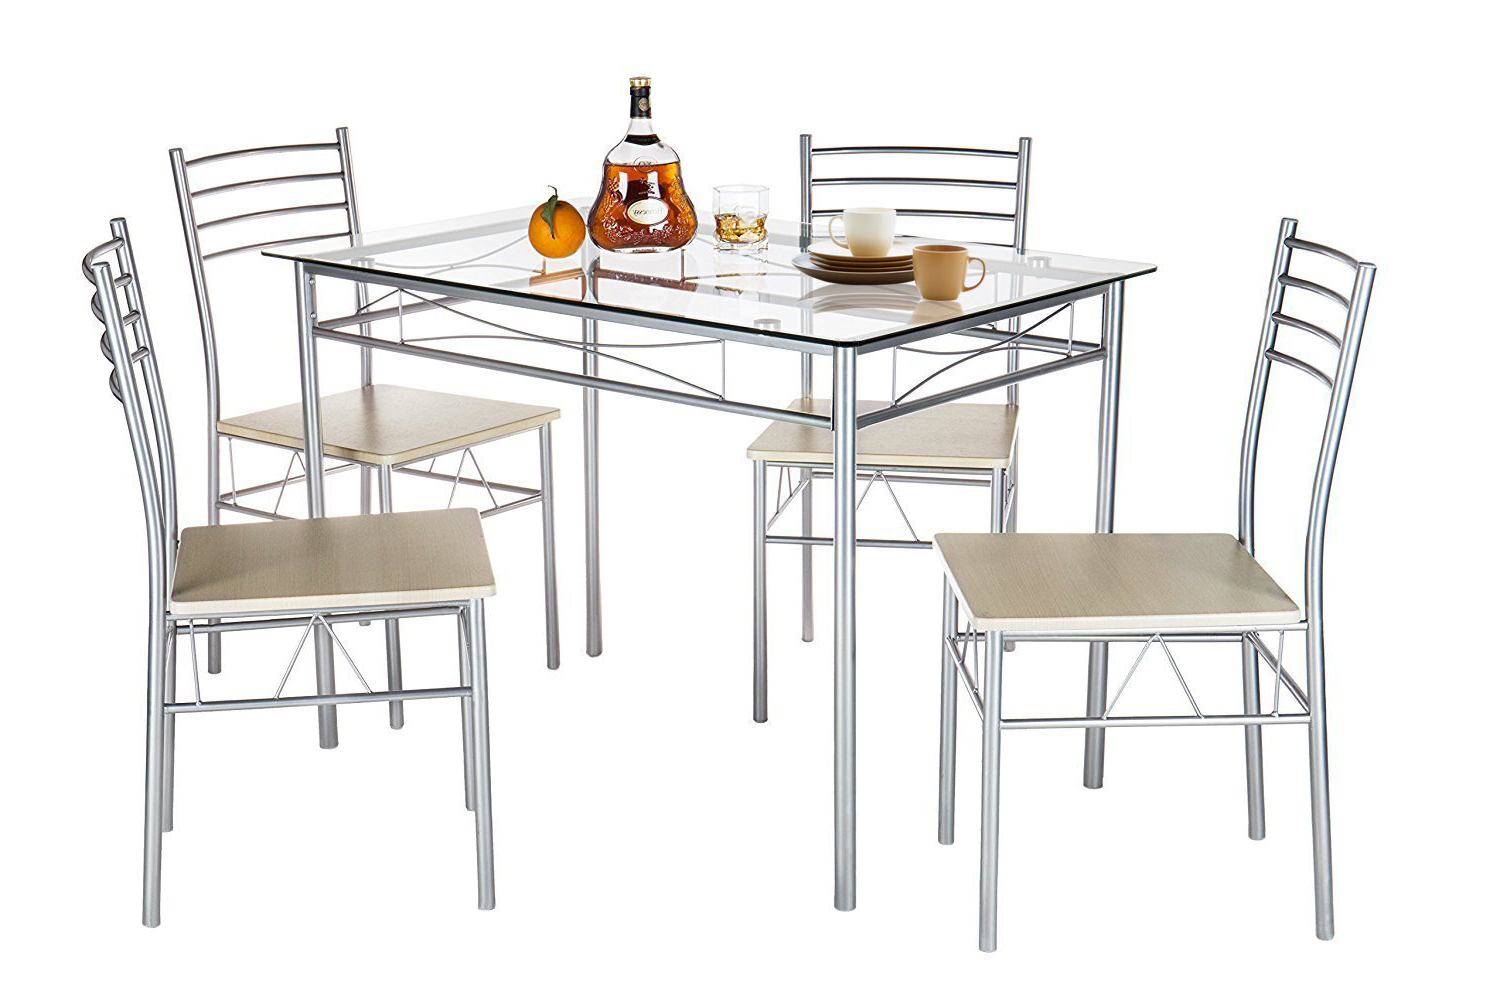 Fashionable Liles 5 Piece Breakfast Nook Dining Sets Intended For Liles 5 Piece Breakfast Nook Dining Set (View 1 of 20)